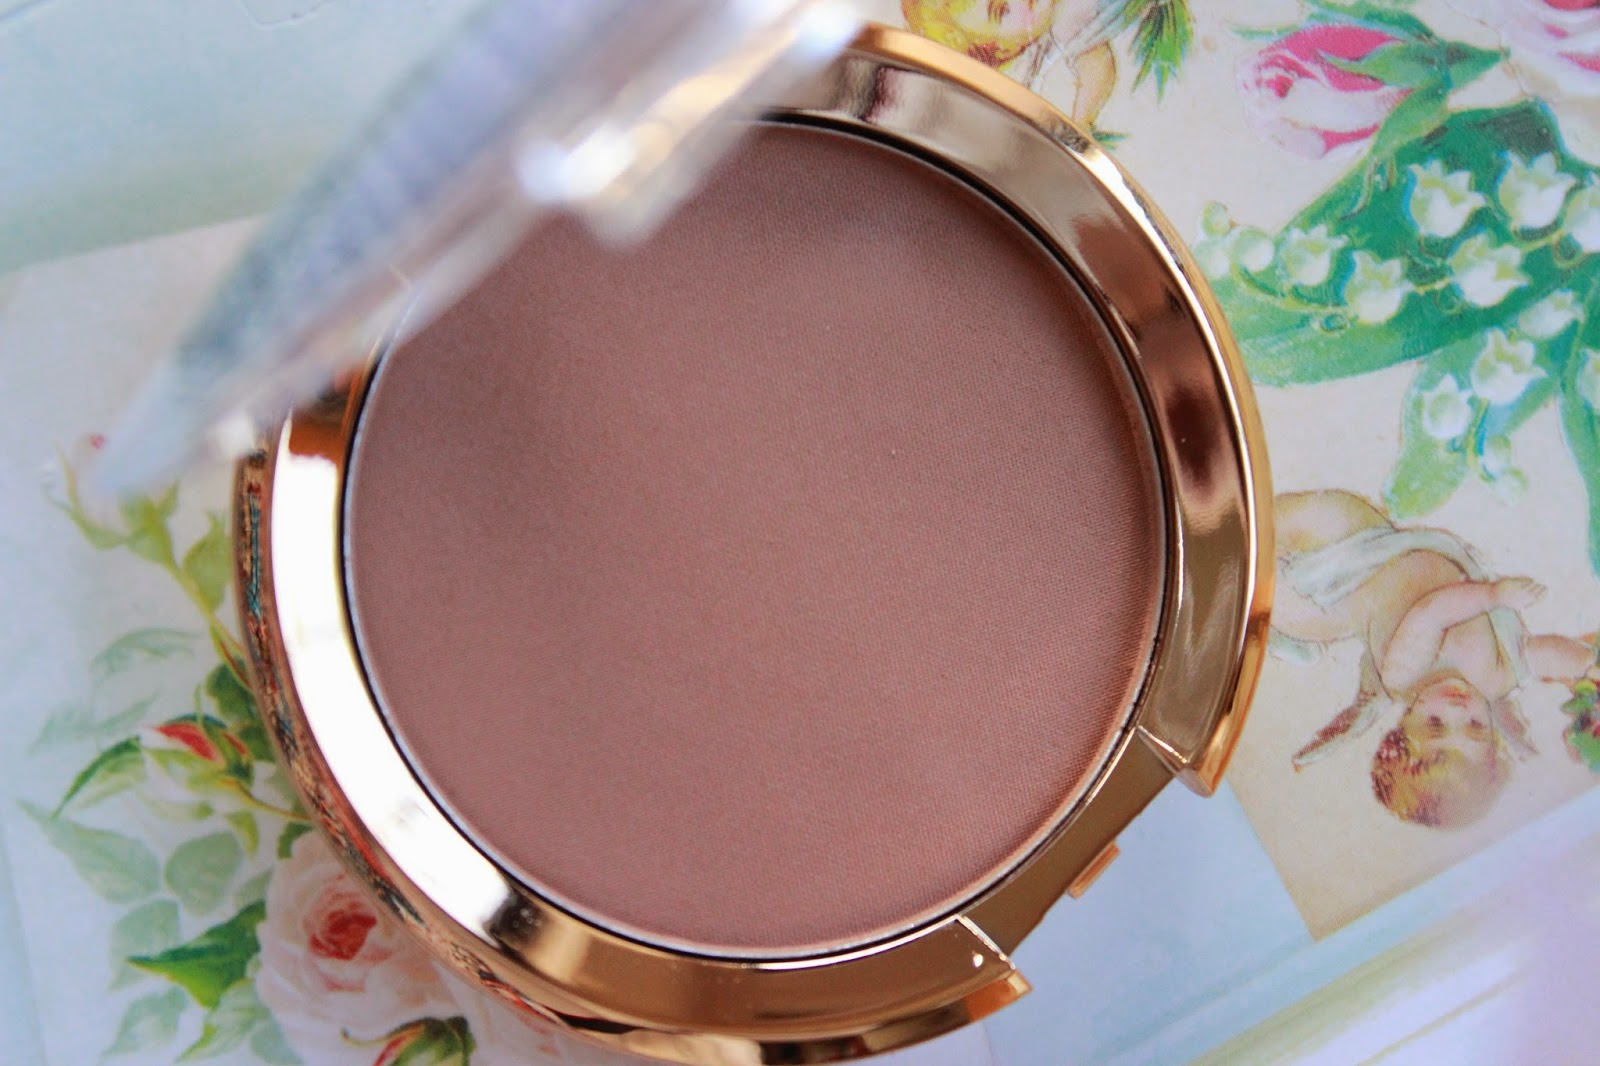 review swatches h&m bronzing powder gorgeous tan